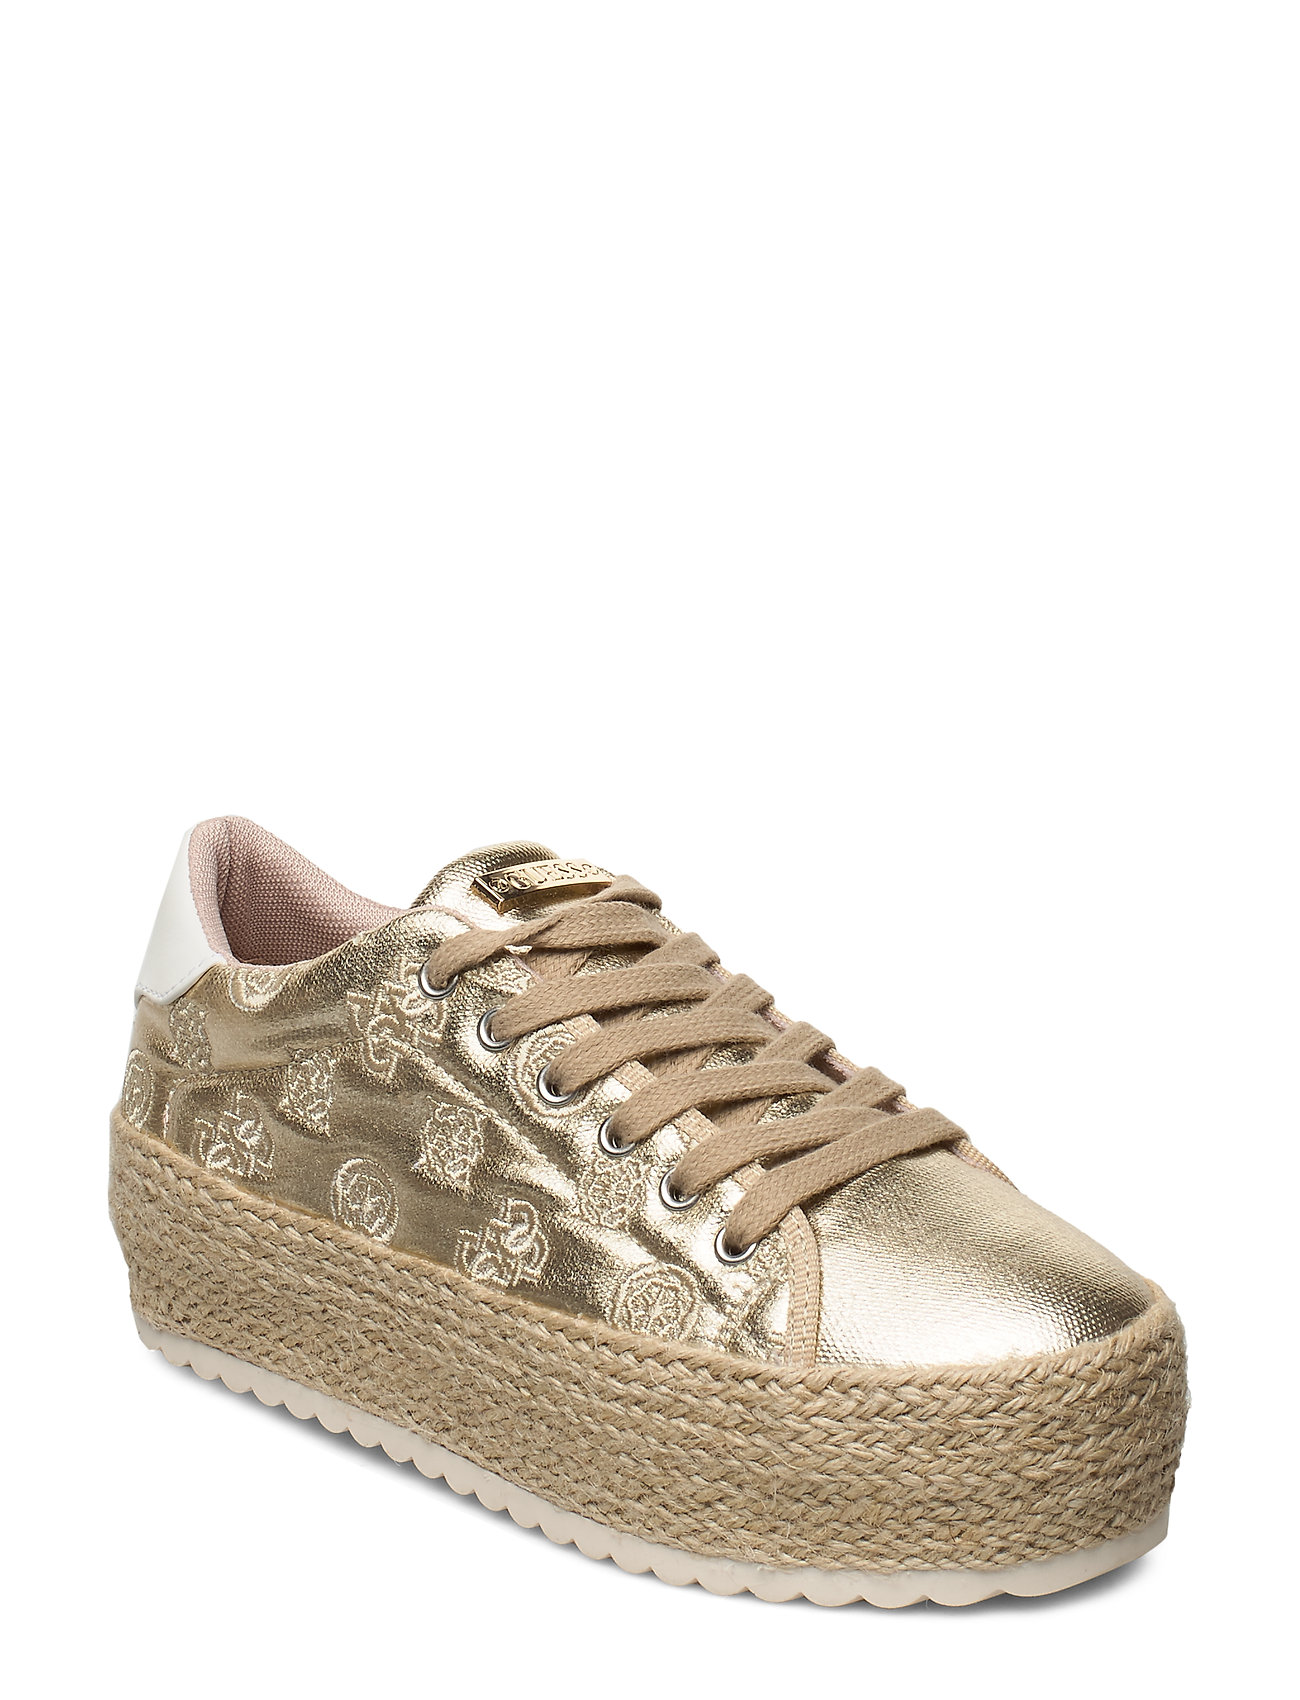 GUESS MARILYN - GOLD